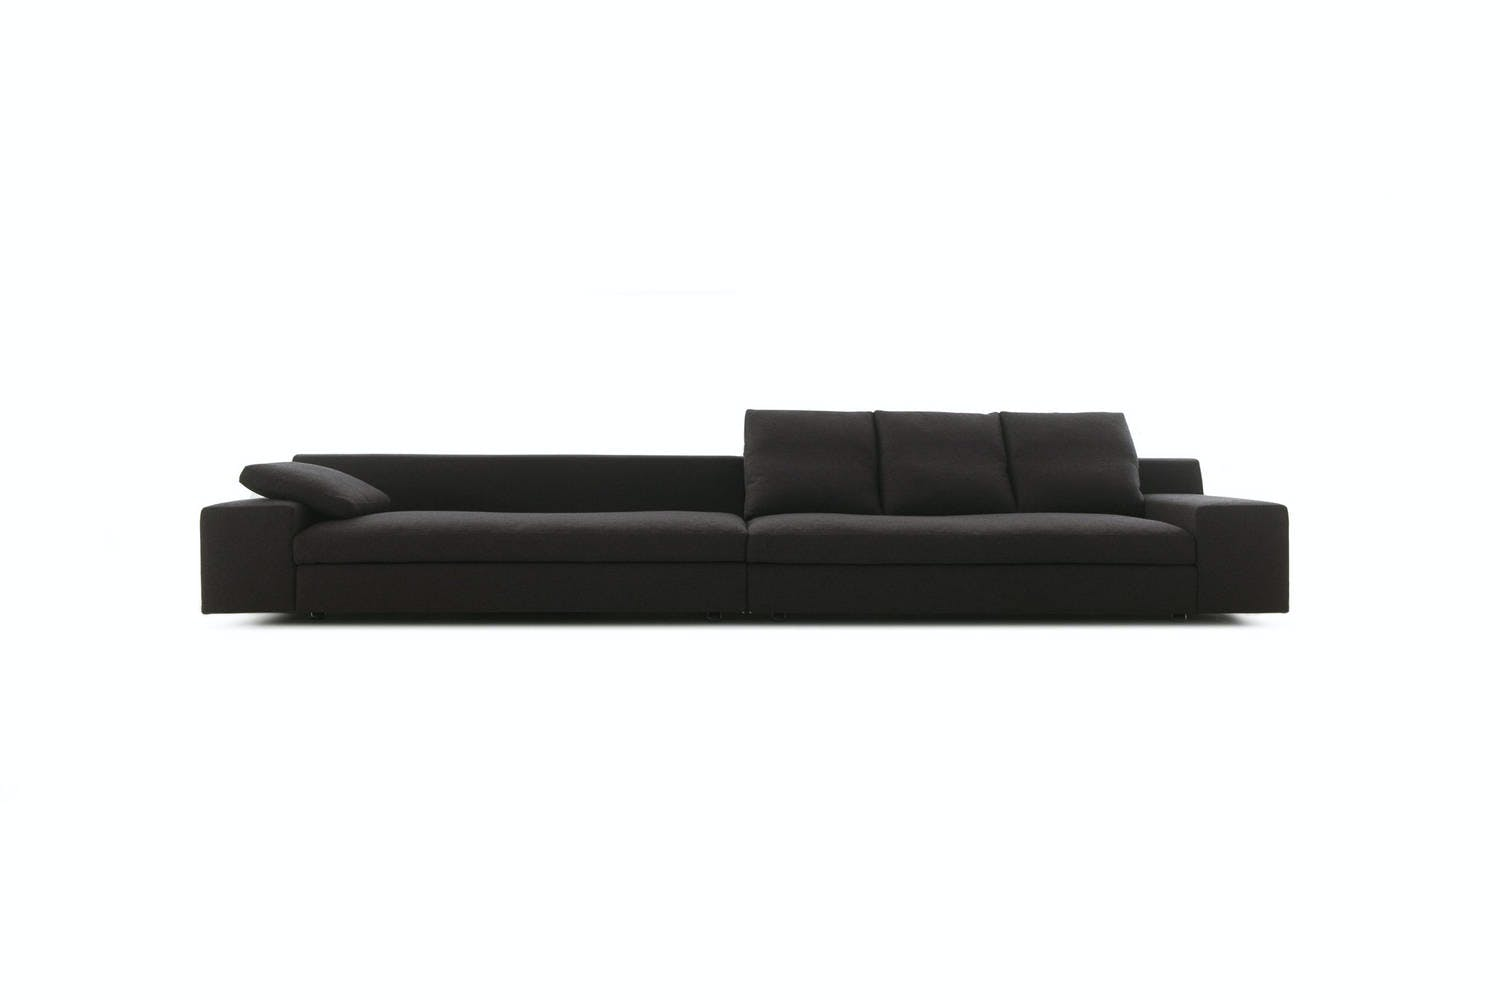 235-236 mister sofa by philippe starck for cassina | space furniture - Chaise Longue Philippe Starck